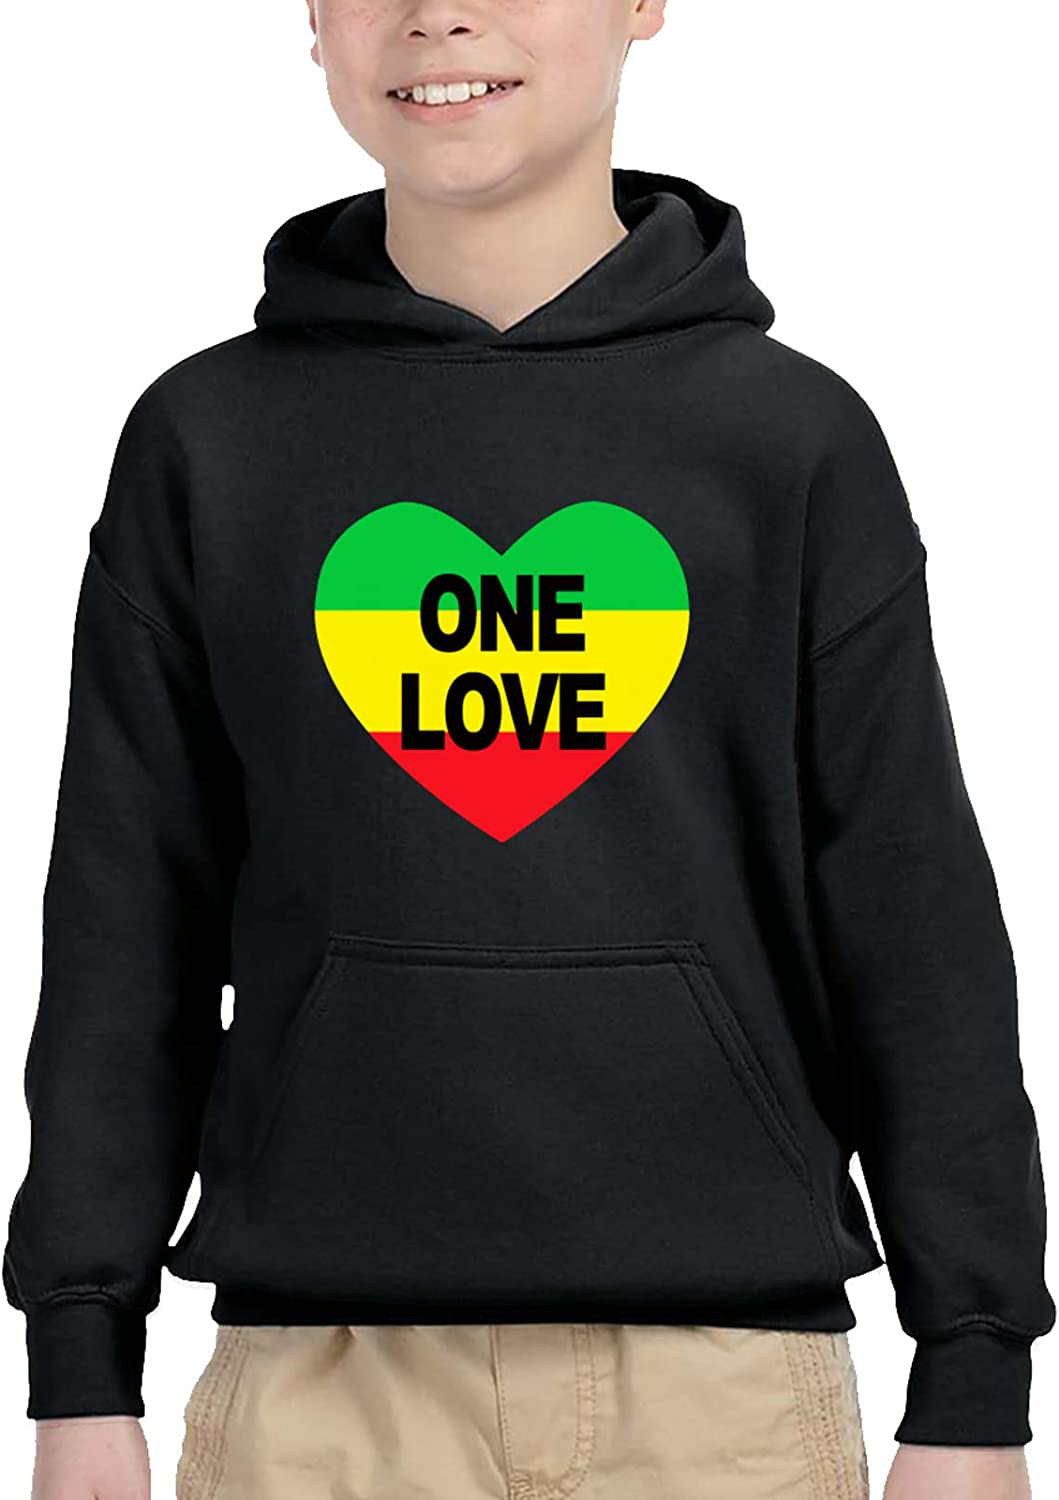 One Love Rasta Teen Hooded Sweater Casual Pullover Hoodies For Baby Boys Girls